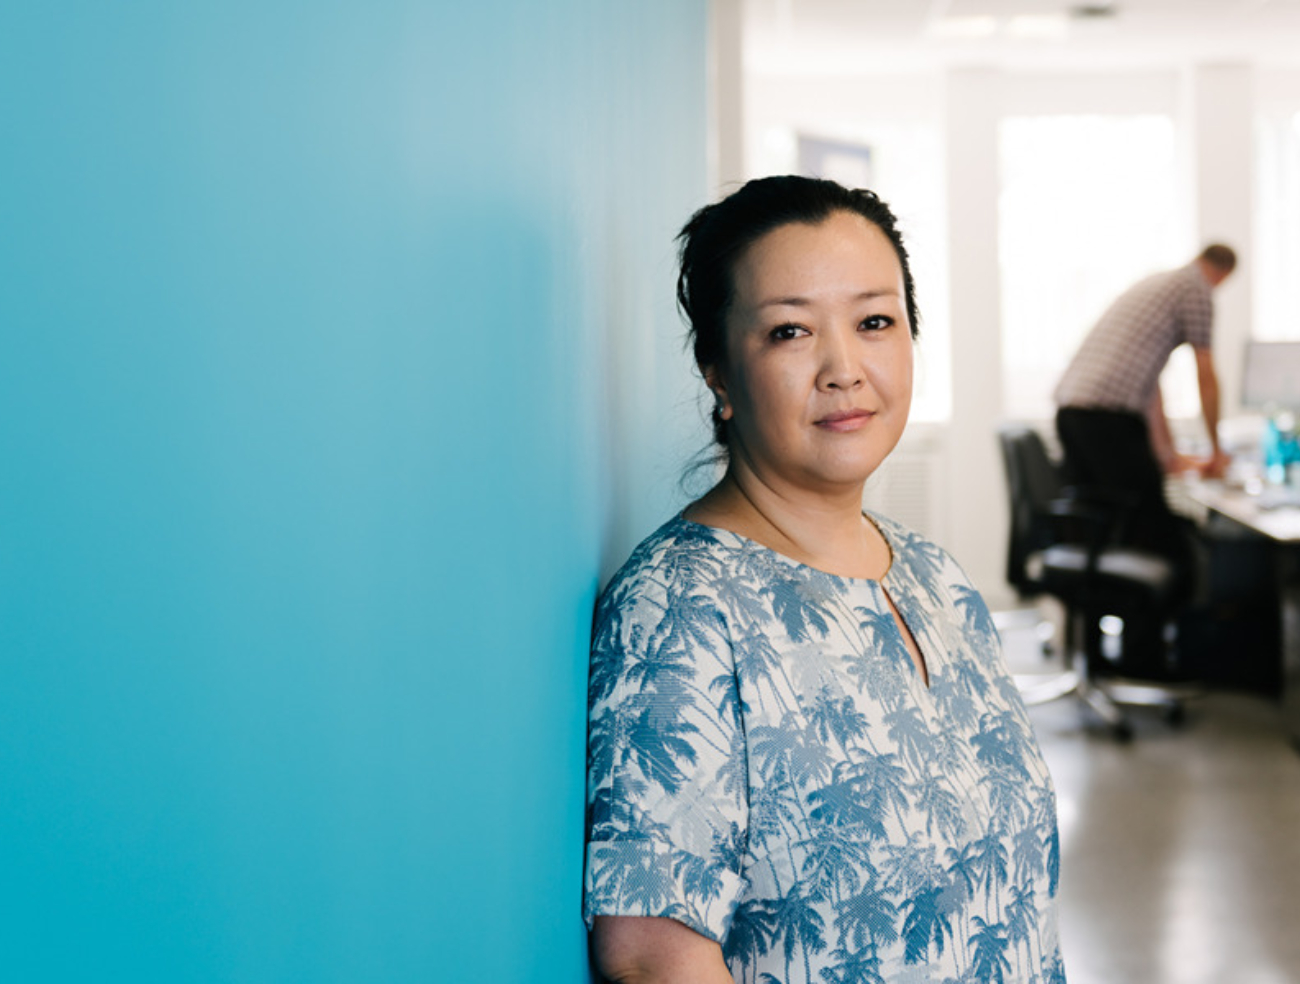 Science & Technology mentor Suki Maesen about role modeling for young women